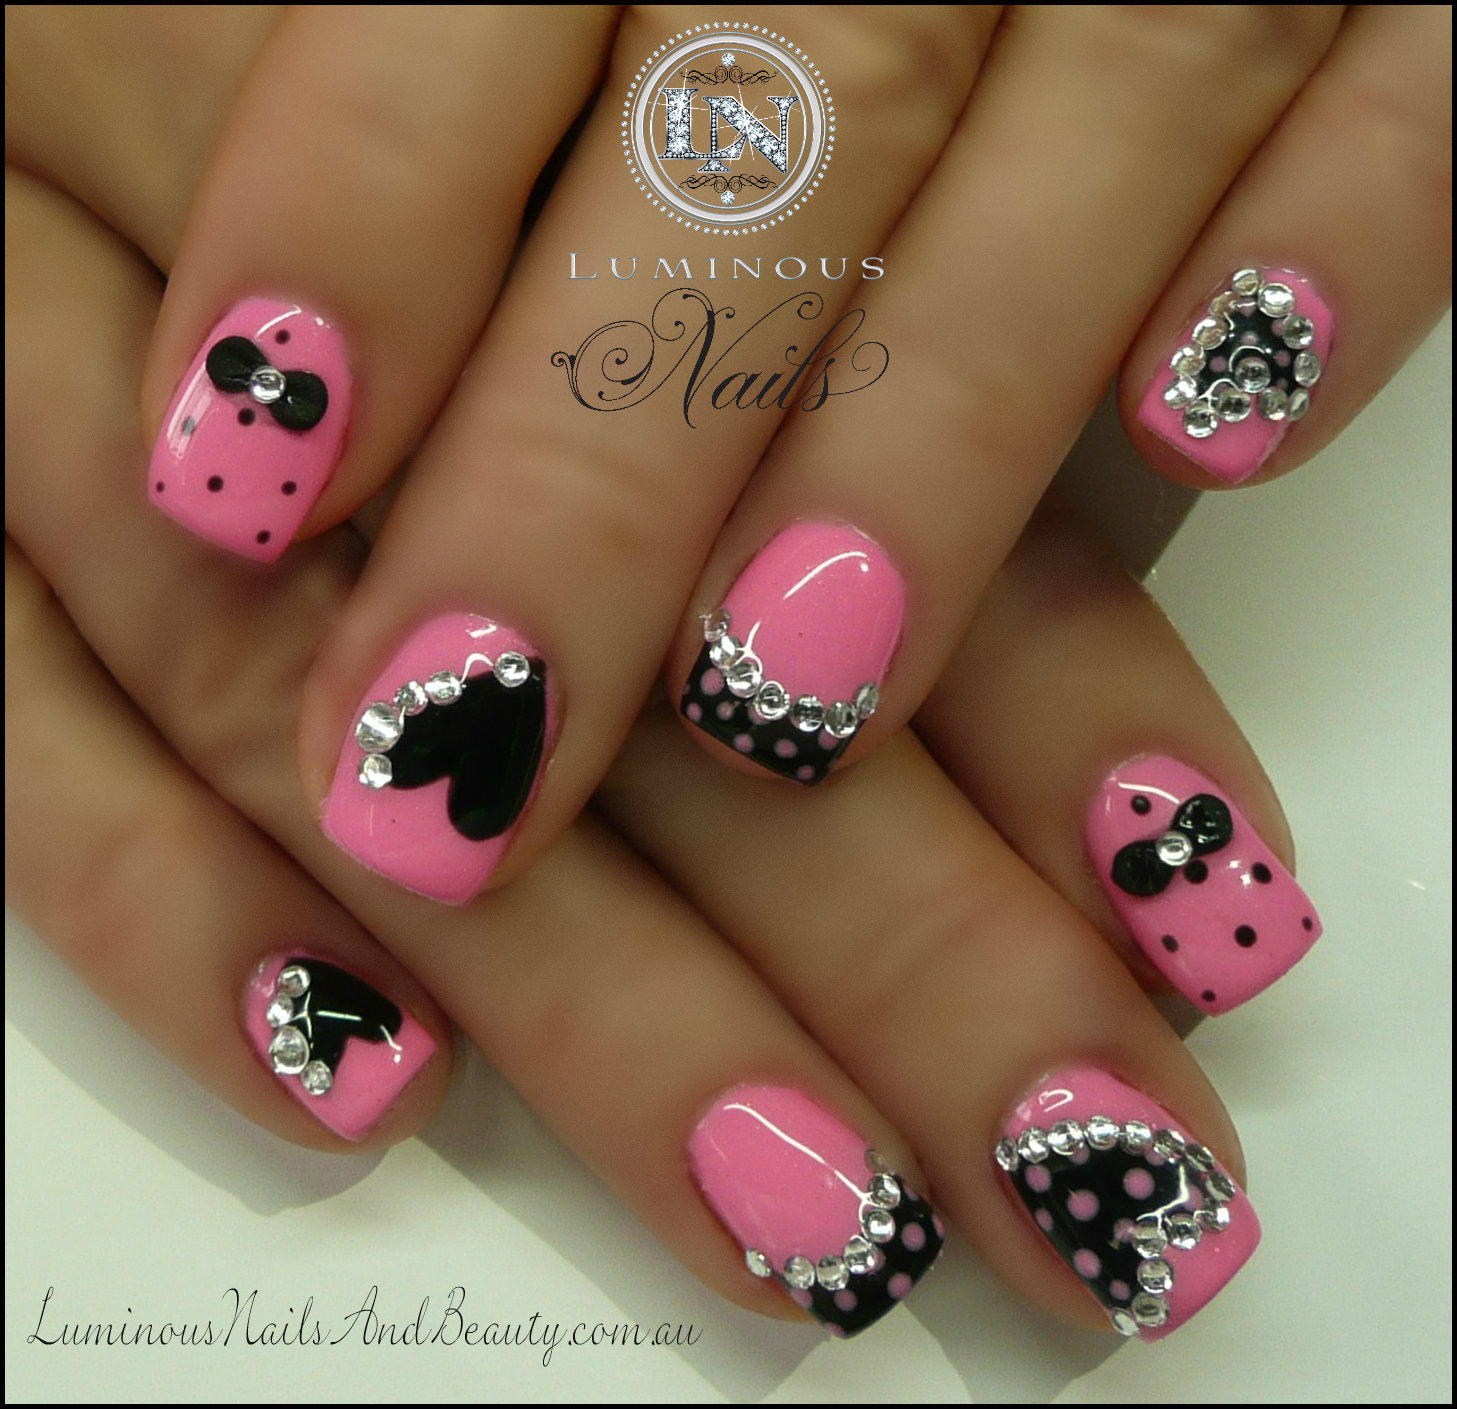 Nails,+Gel+Nails,+Sculptured+Gel+with+Custom+Pink+Gel,+Mani+Q+Black+